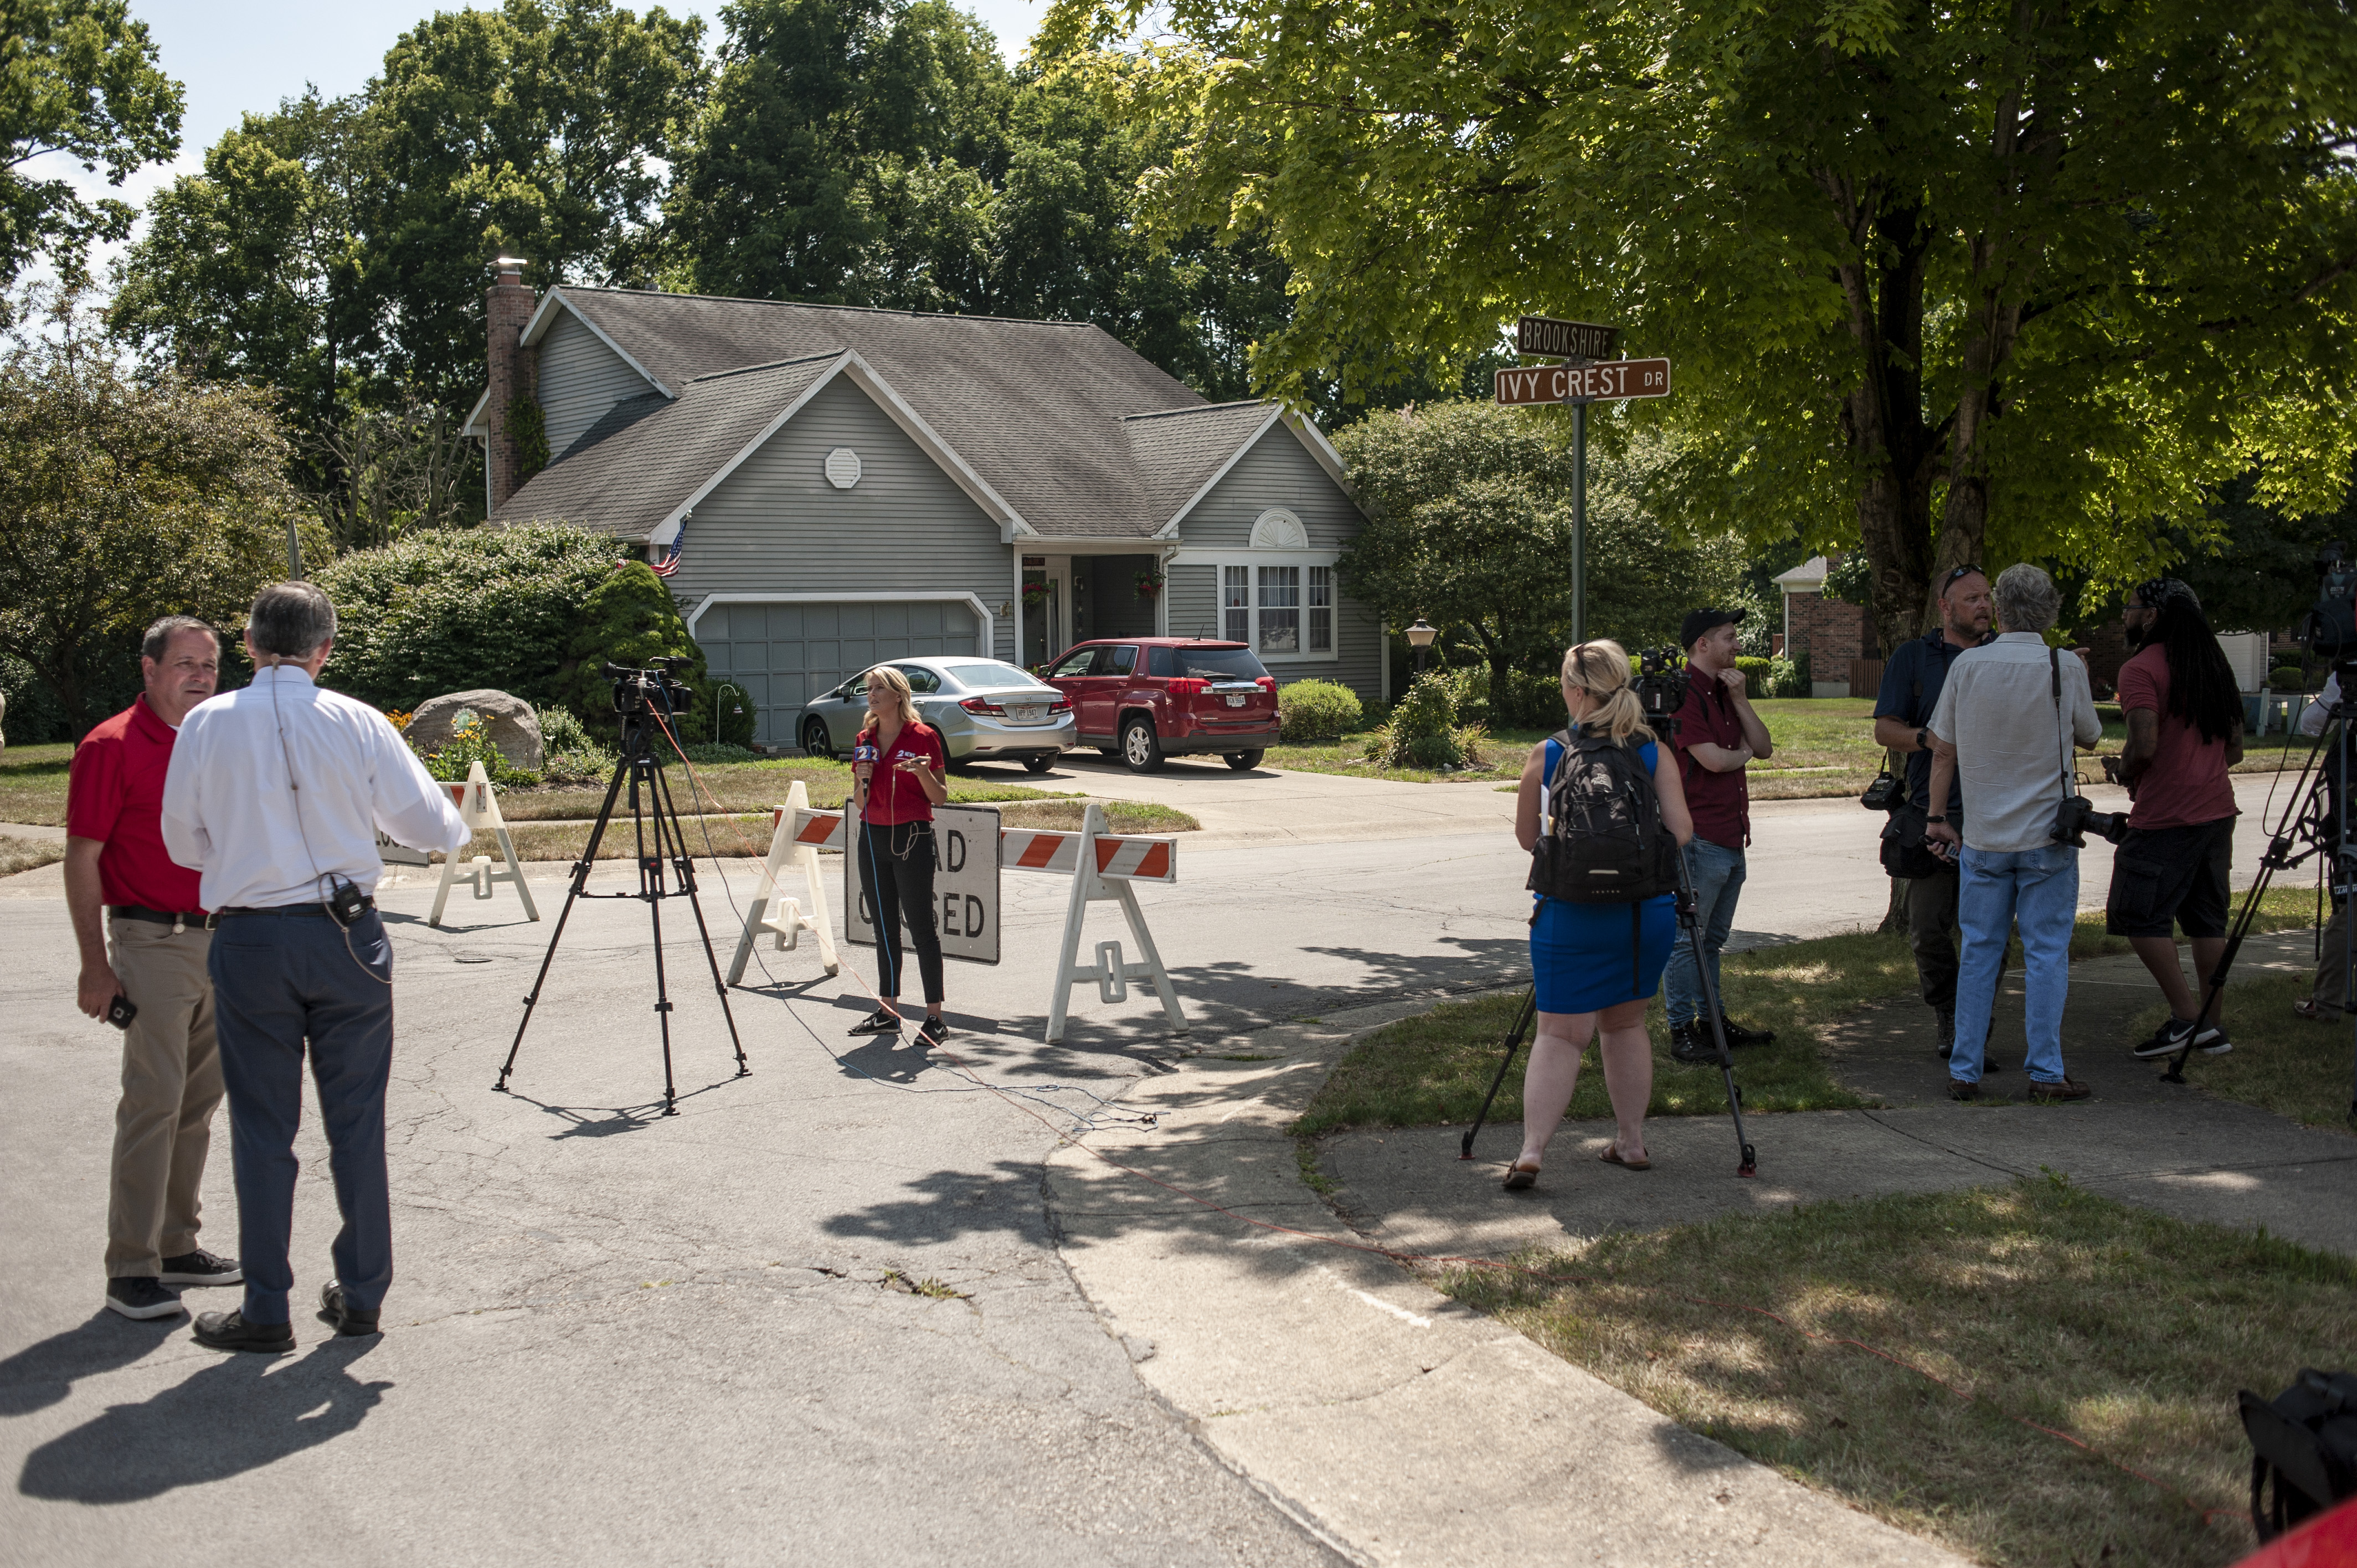 BELLBROOK, OH - AUGUST 4: Media crews gather near the street where the suspect in a mass shooting is believed to have a residence on August 4, 2019 in Bellbrook, Ohio. (Photo by Matthew Hatcher/Getty Images).